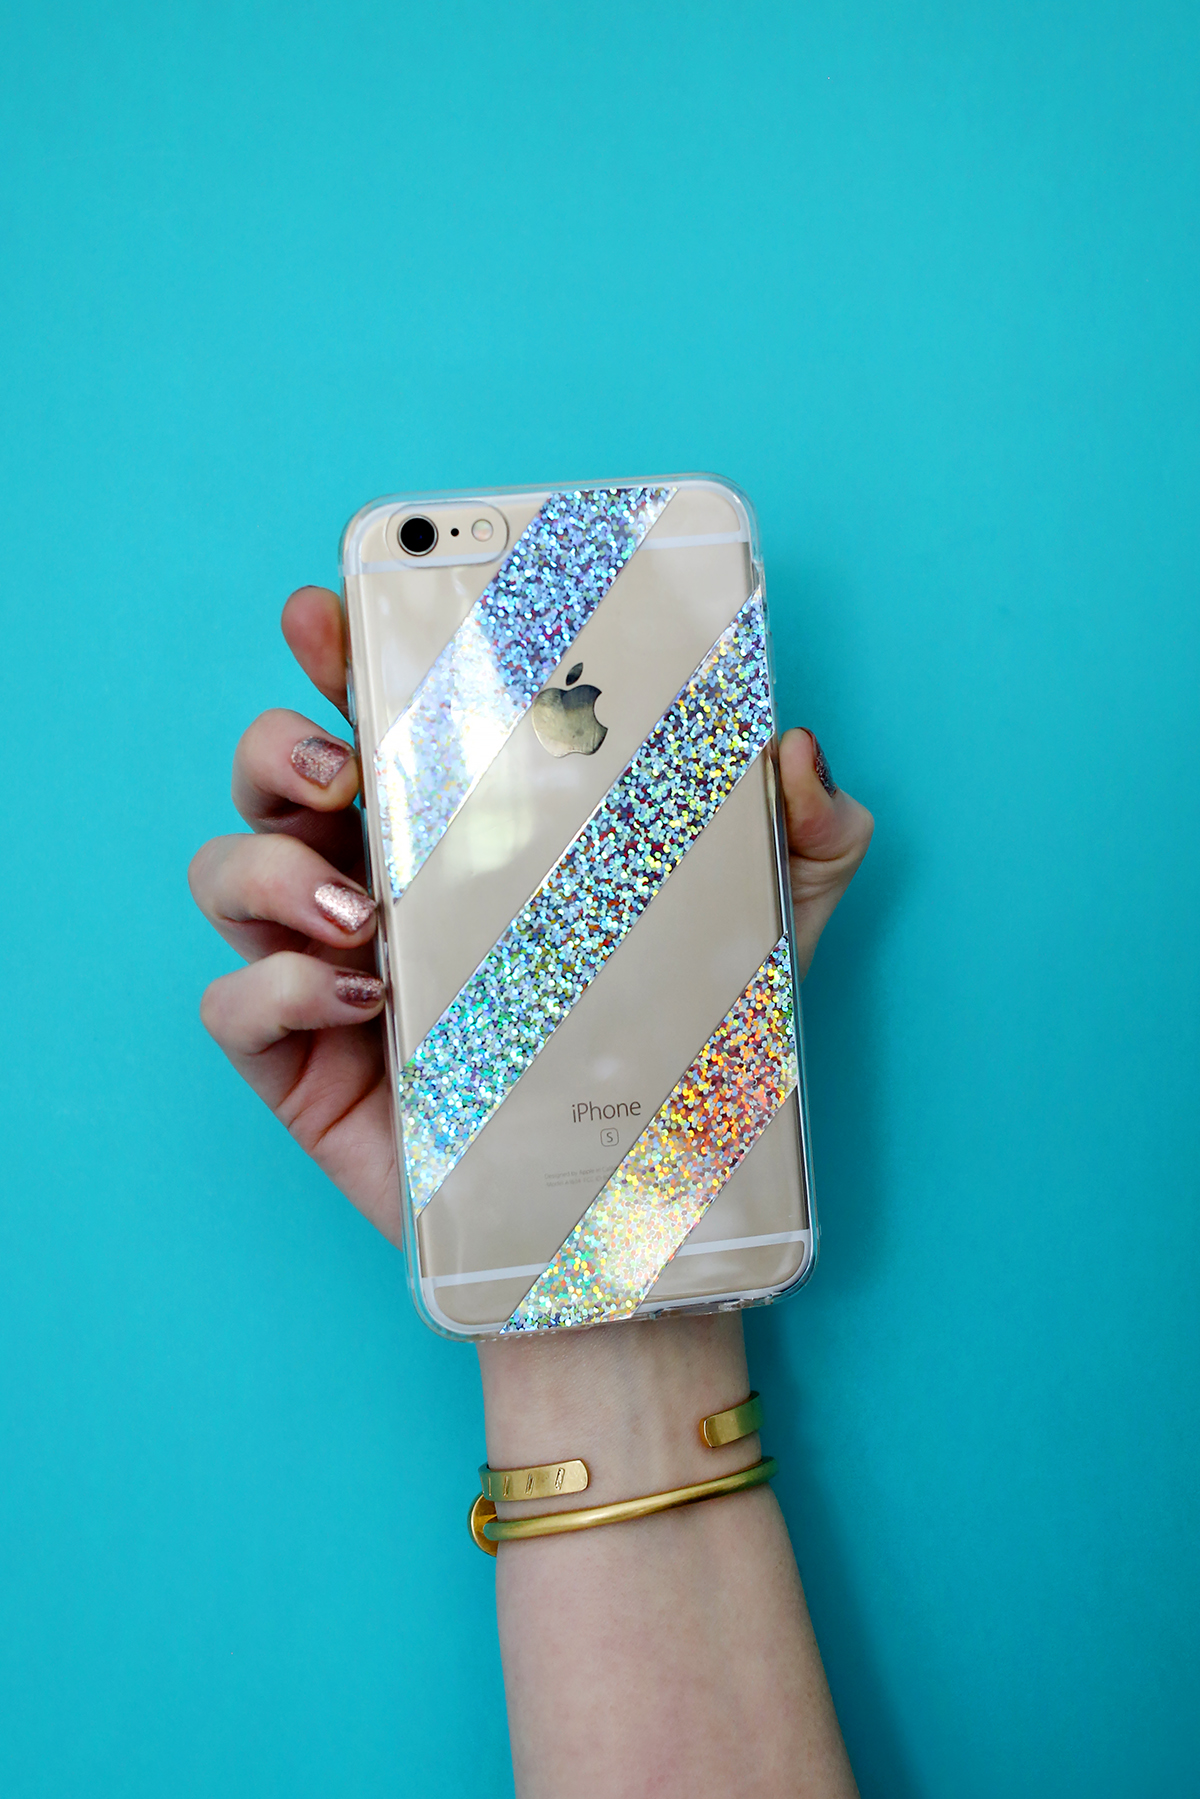 You used to call me on my cell phone